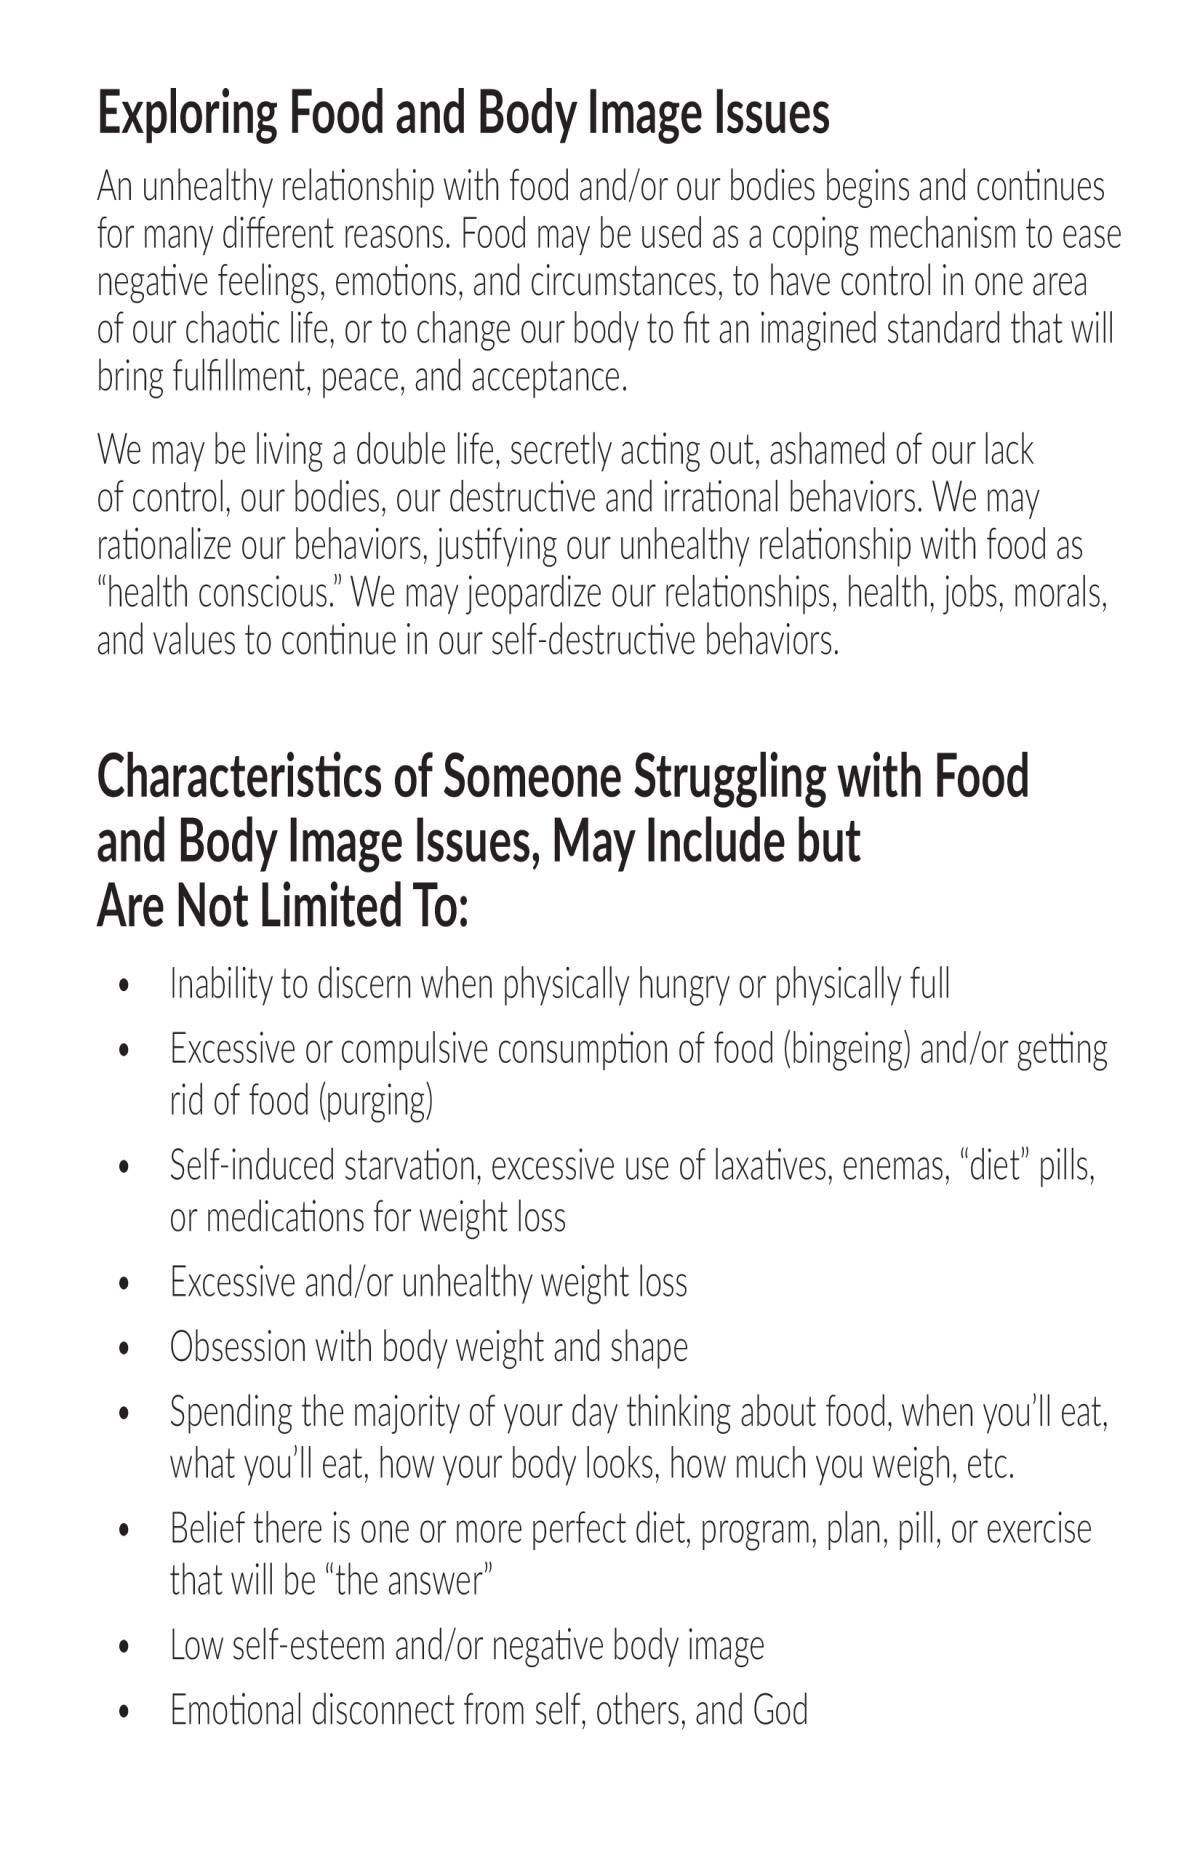 Food and Body Image Issues